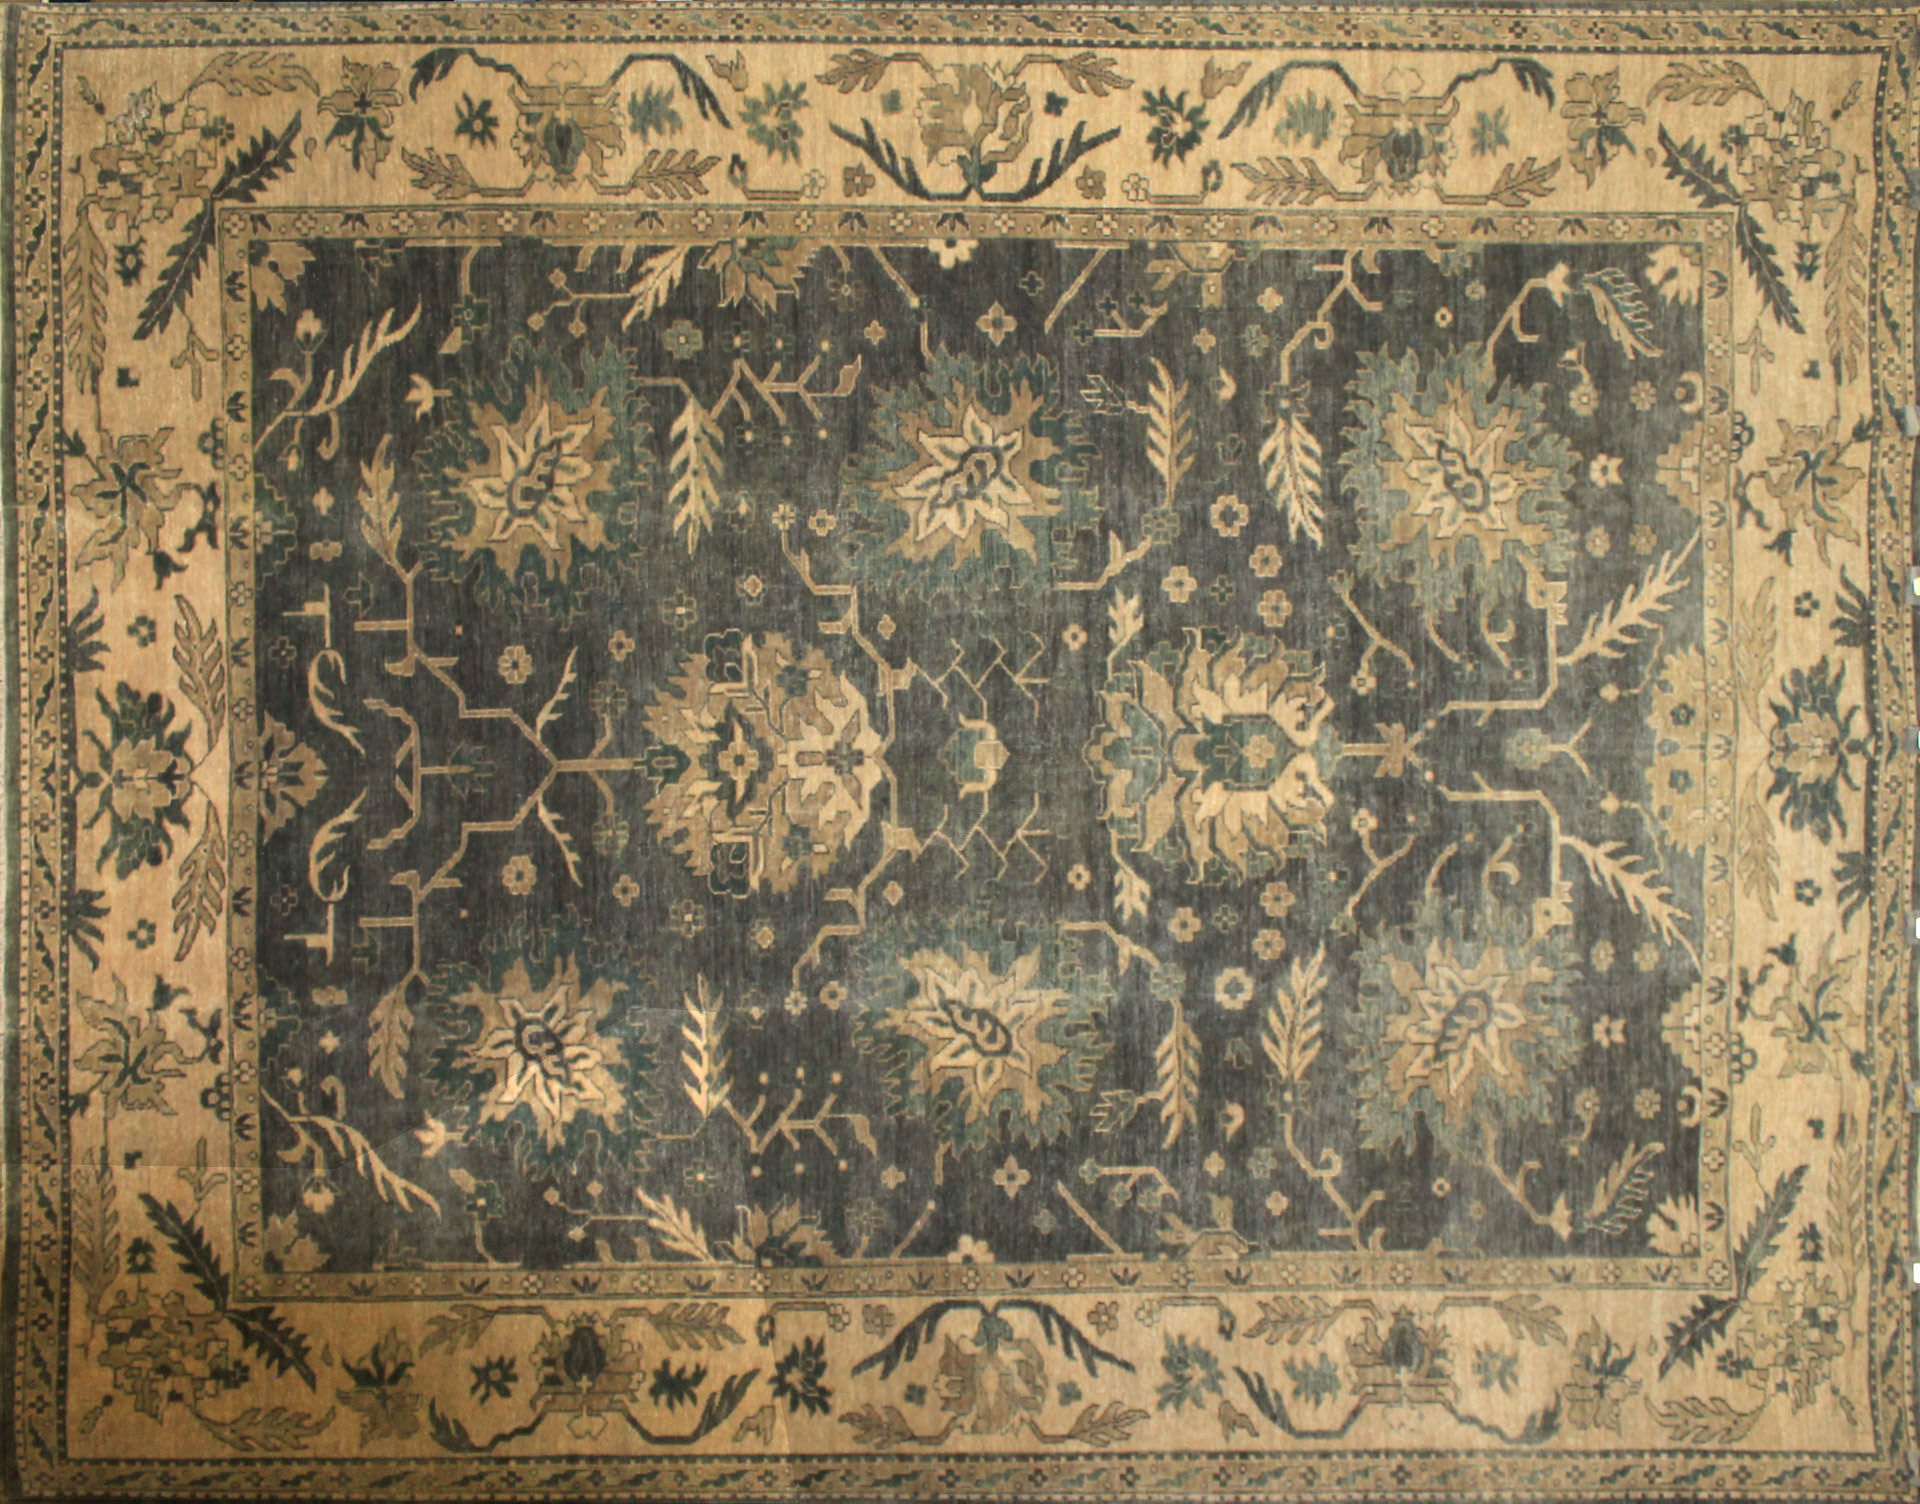 9x12 Oushak Hand Knotted Wool Area Rug - MR17011